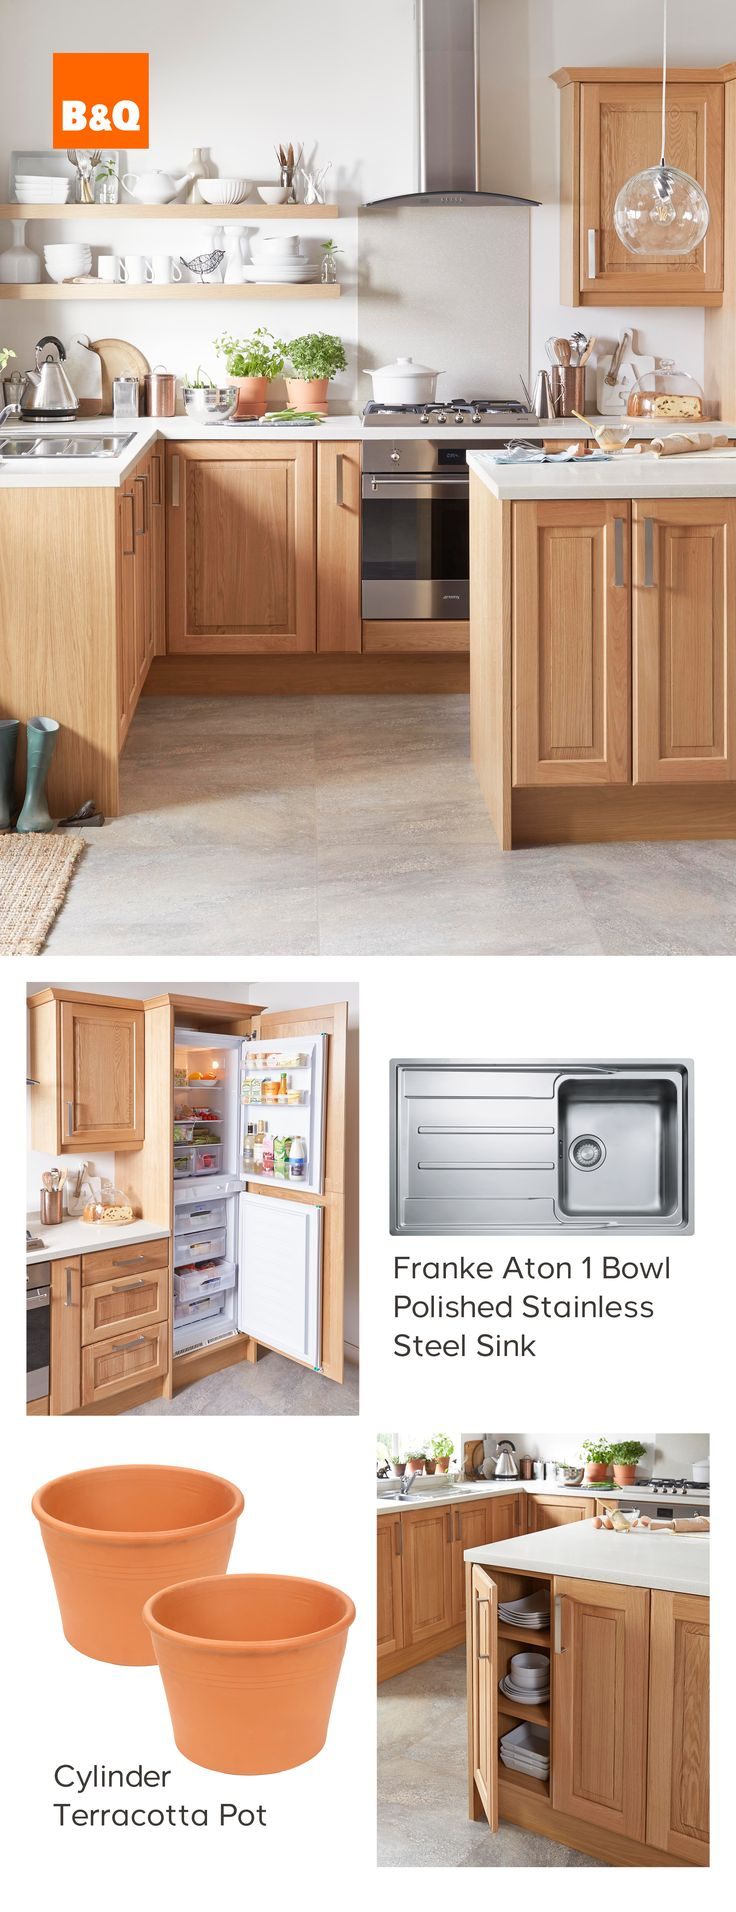 Leather jacket killer b&q - Kitchens At B Q Cooke Lewis Chesterton Solid Oak Kitchen Is A Modern Classic Giving A Warm Homely Feel